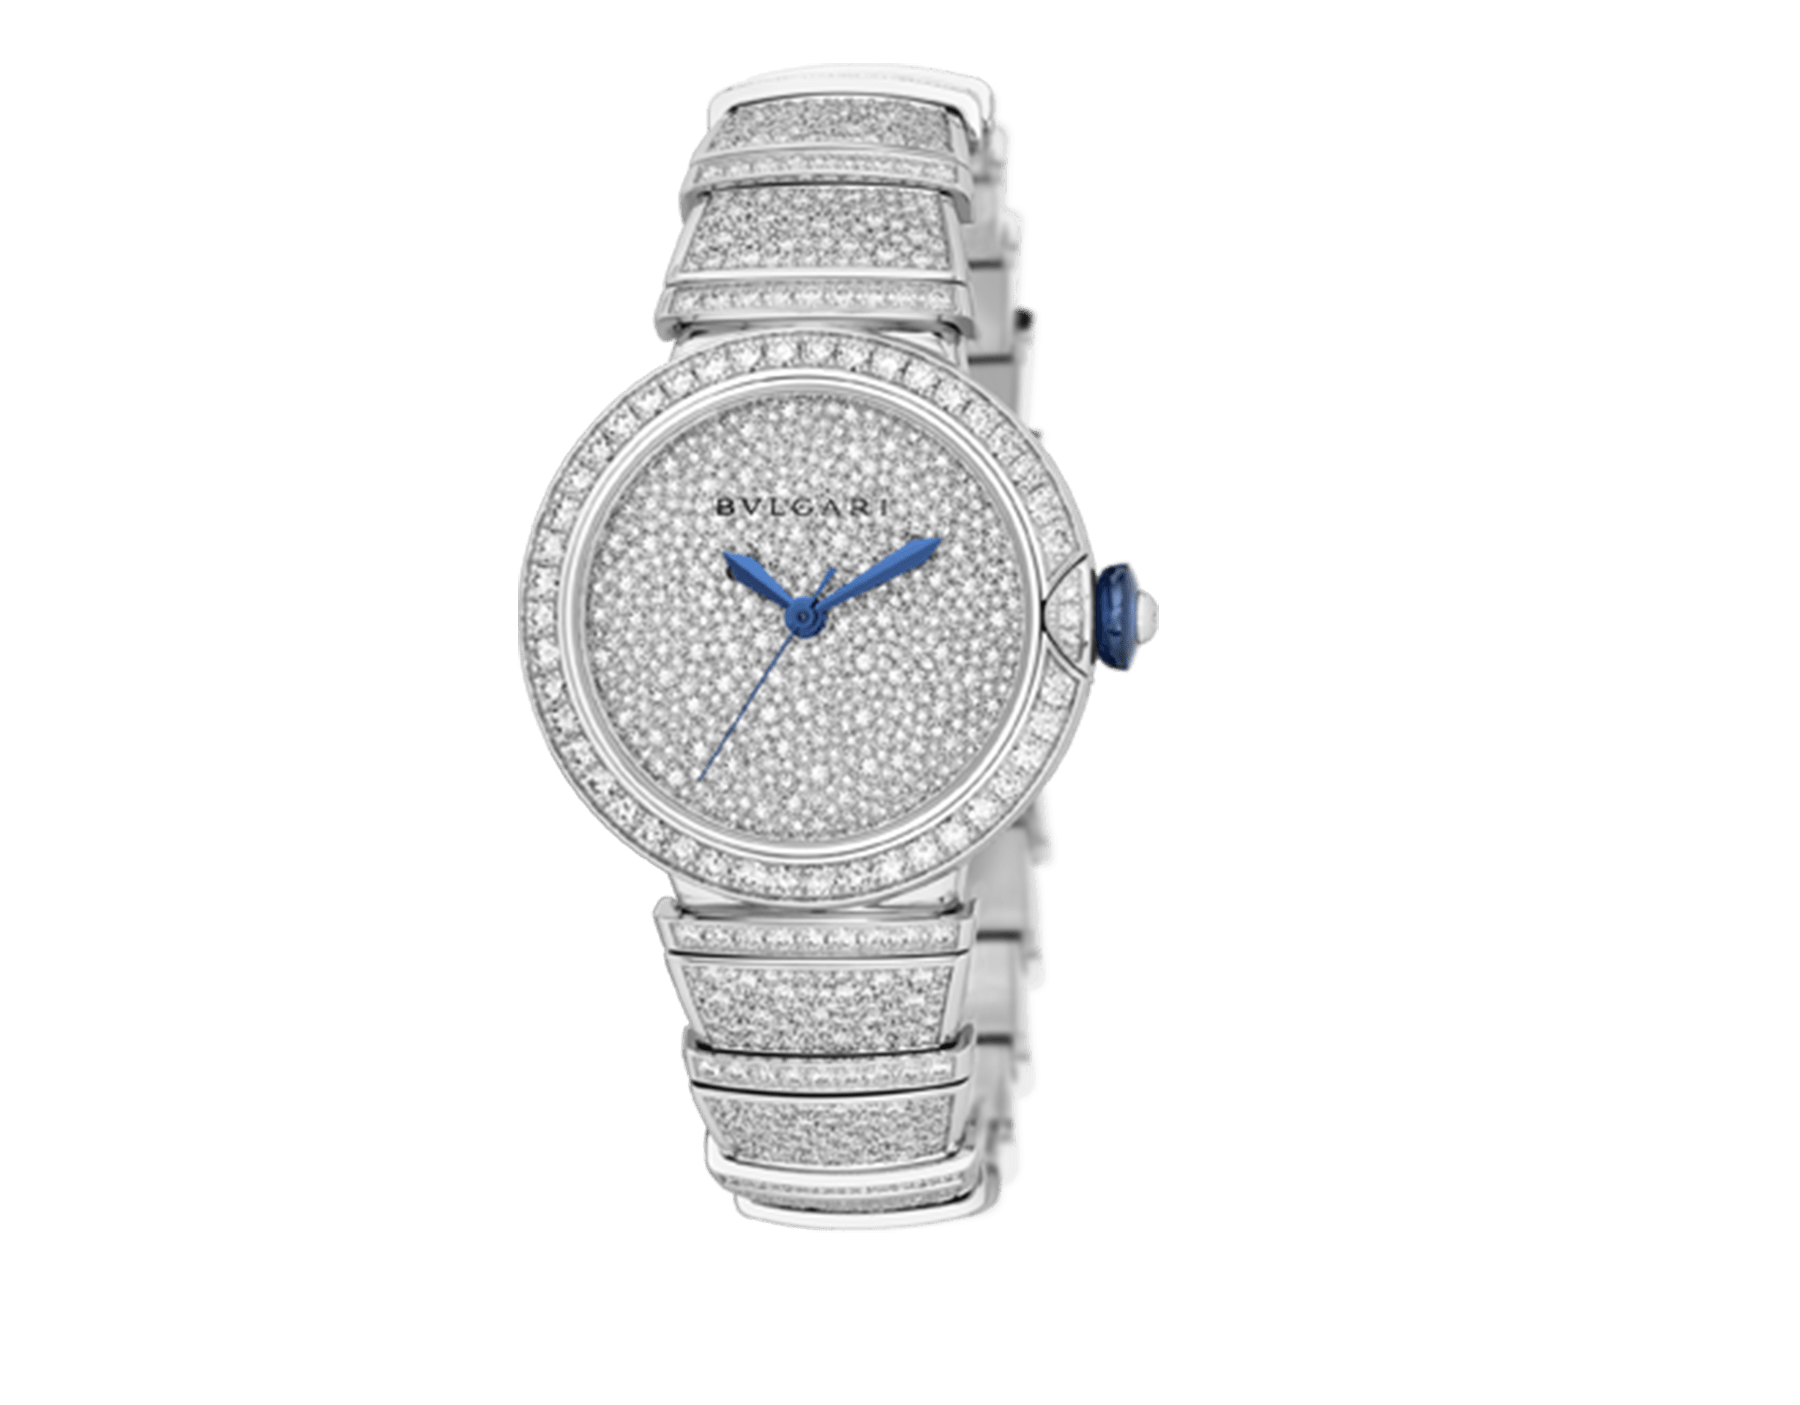 LVCEA watch in 18 kt white gold with brilliant-cut diamond set case and bracelet, and full pavé diamond dial. 102365 image 2